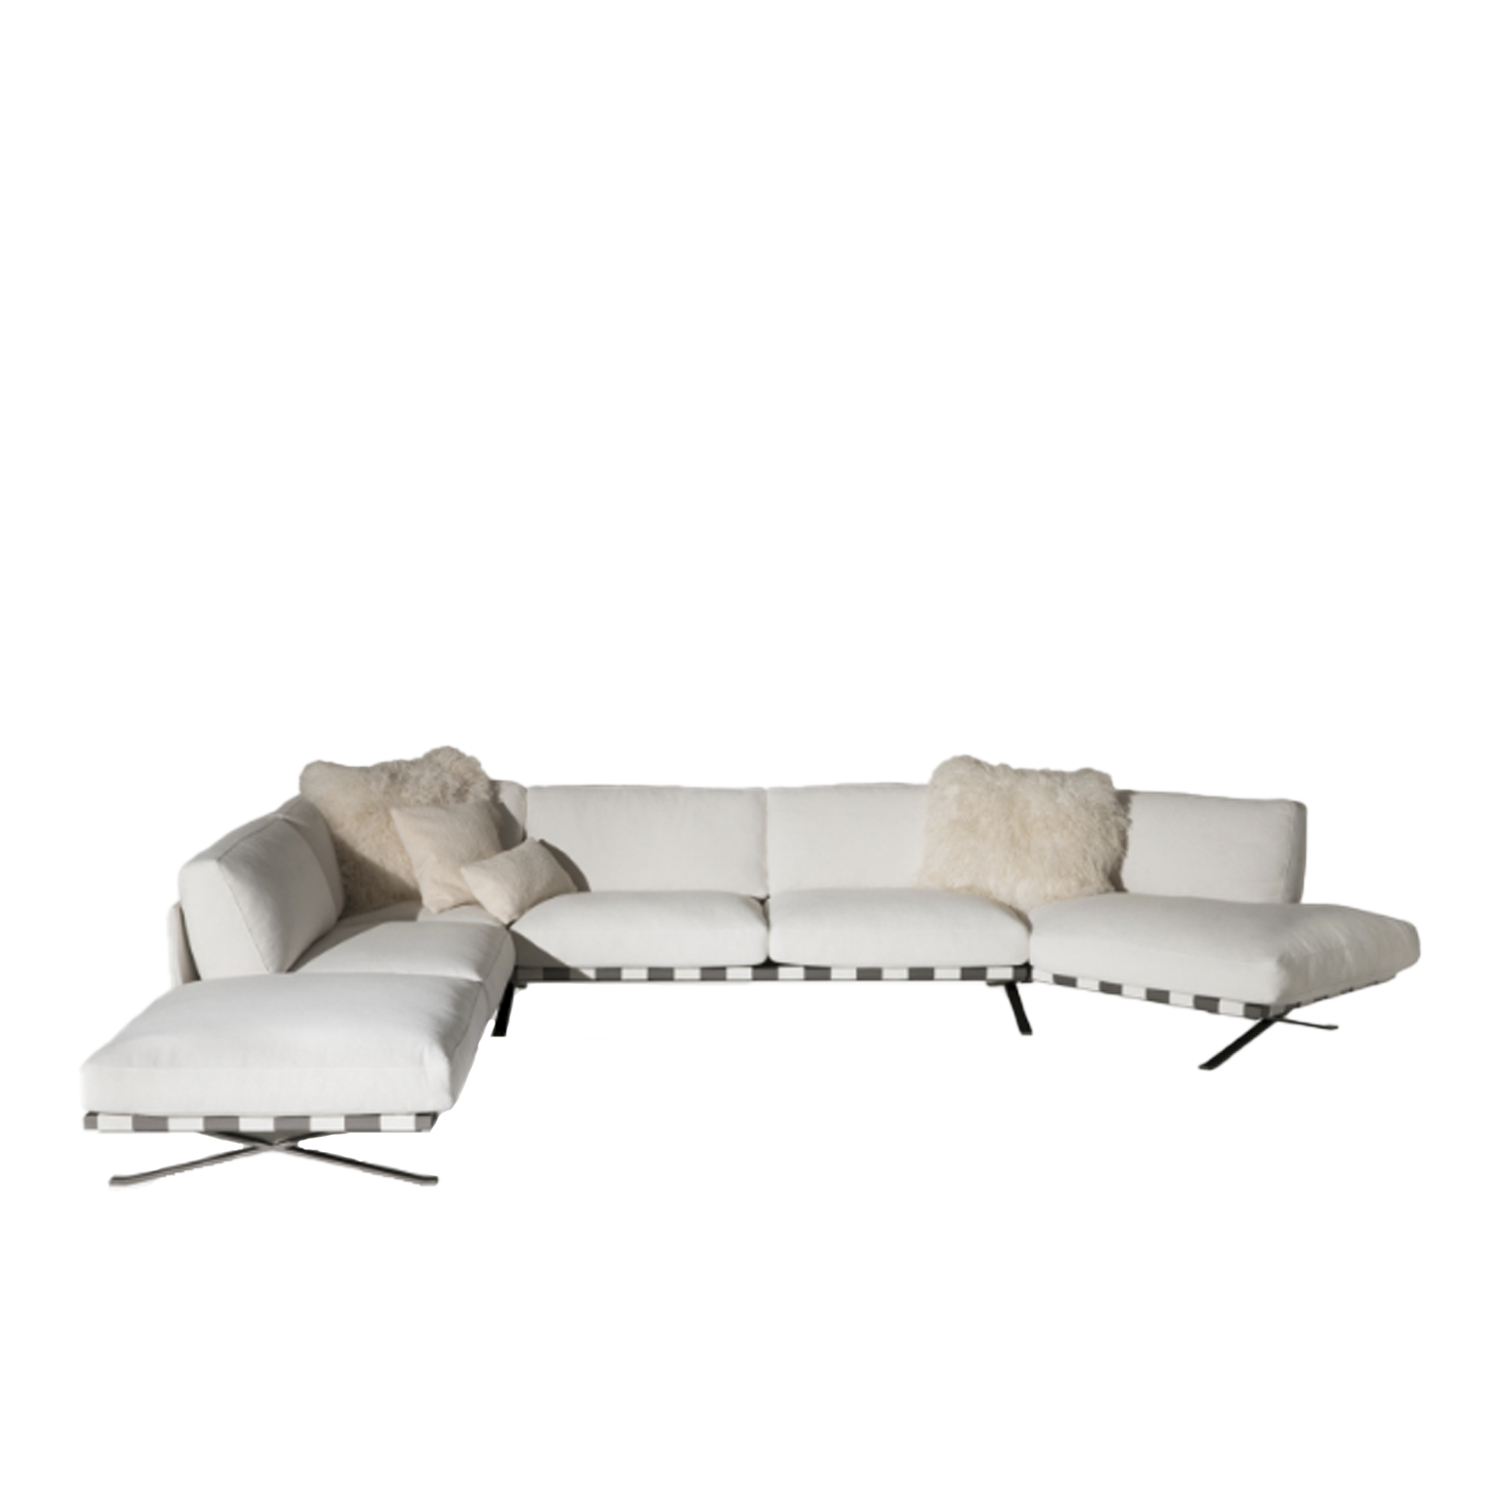 Fenix Modular Sofa - The sectional sofa is the theme that has characterized typological design since the 90s of last century. Ludovica and Roberto Palomba confront it, emphasizing the sense of suspension from the ground, thanks to a thin metal structure and developing, in the version with terminals, a great peninsula from the gracefully asymmetric shape. | Matter of Stuff